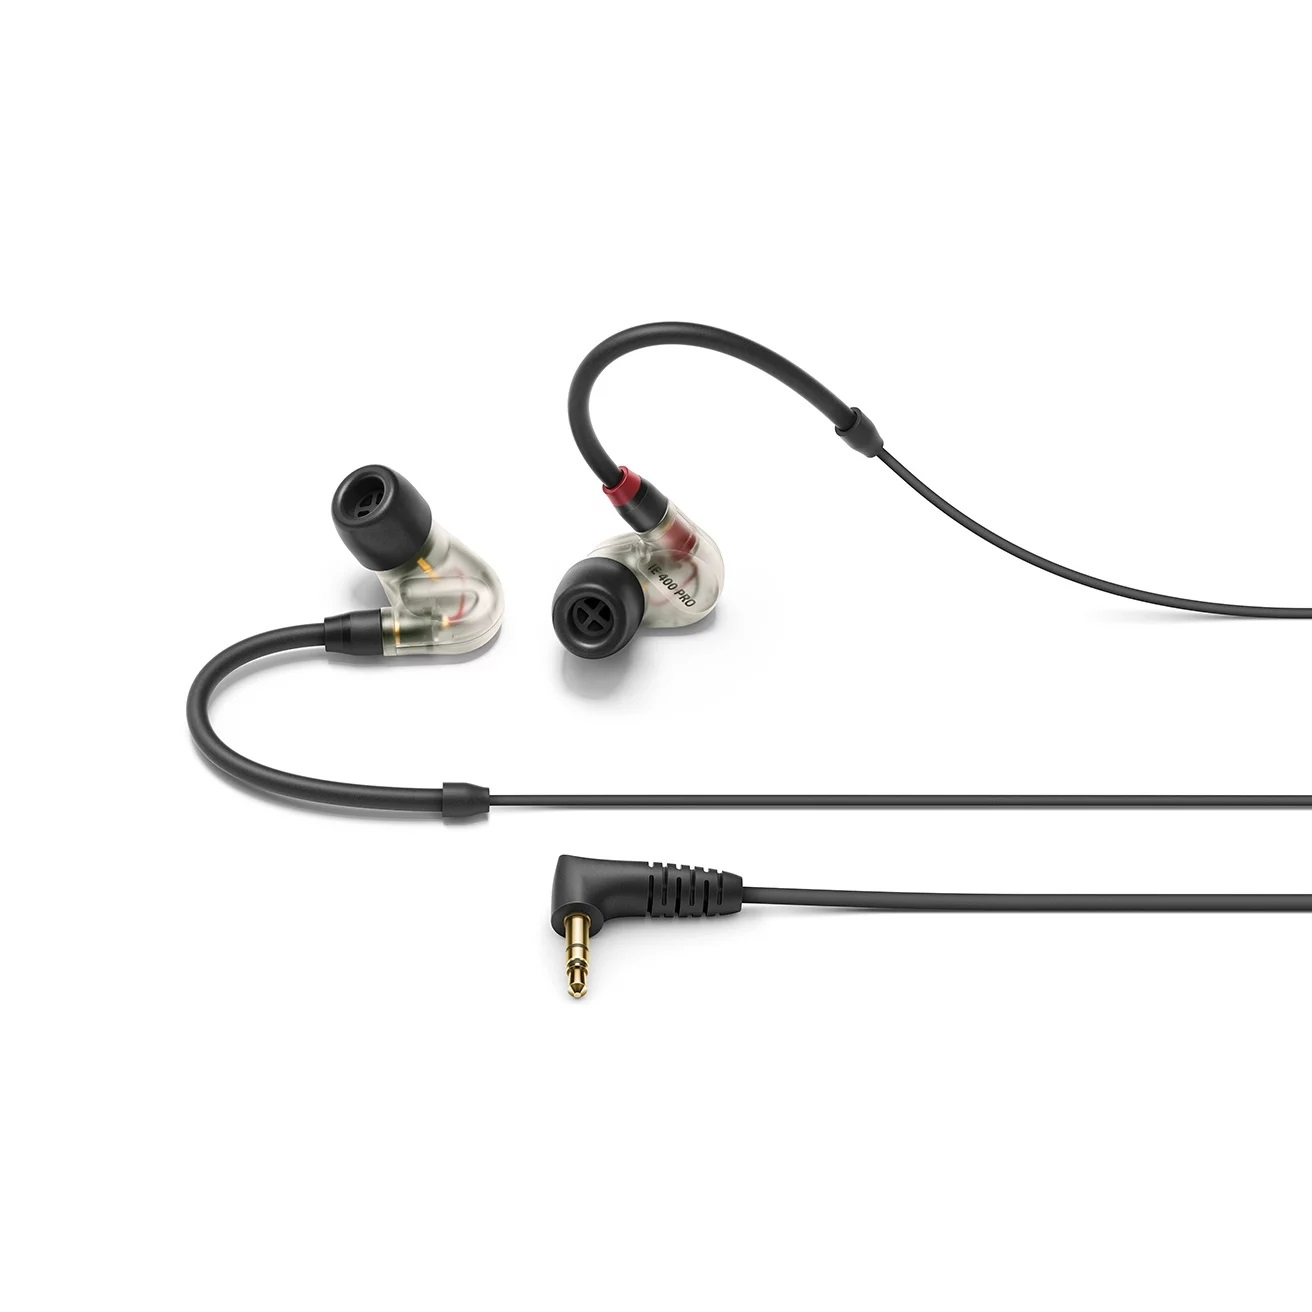 Dynamic in-ear monitoring headphones with studio sound